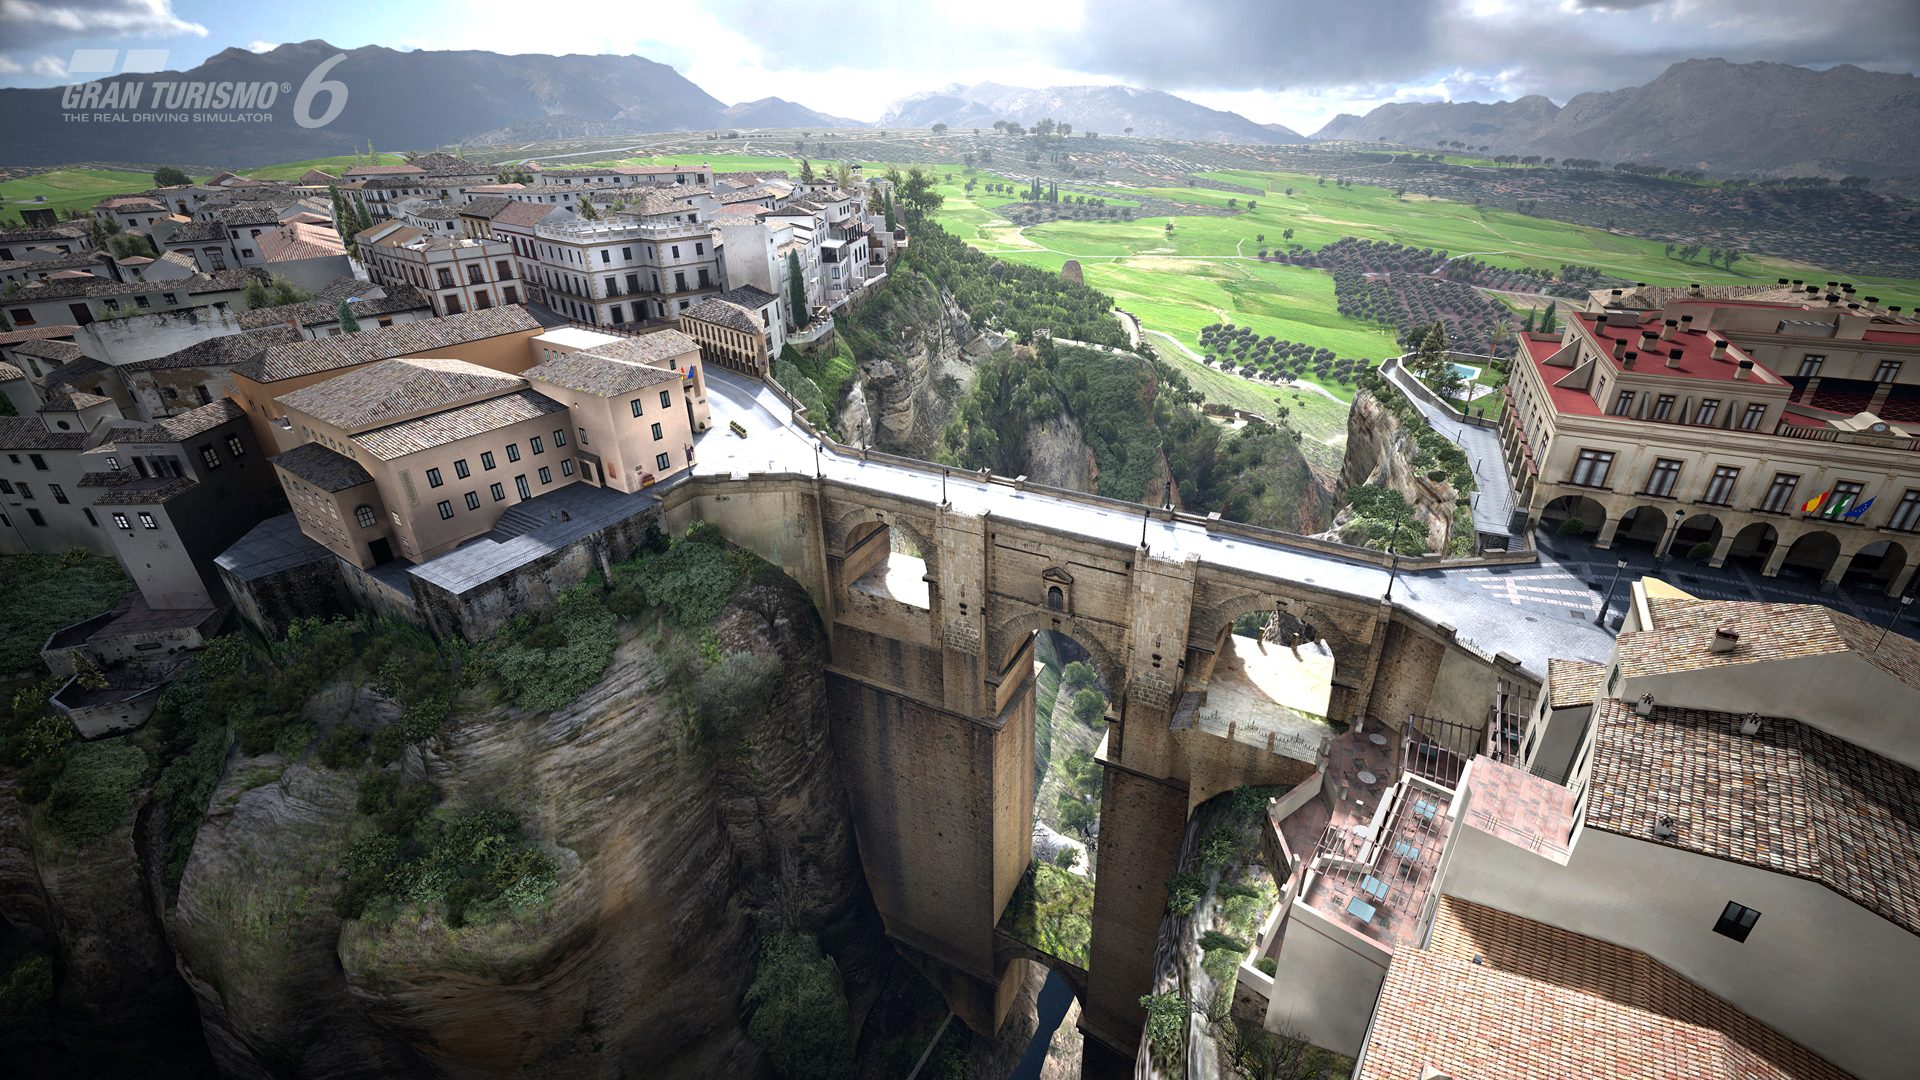 Ronda Spain  city pictures gallery : Ronda, Spain Gran turismo 6 launch event kicks off in ronda, spain